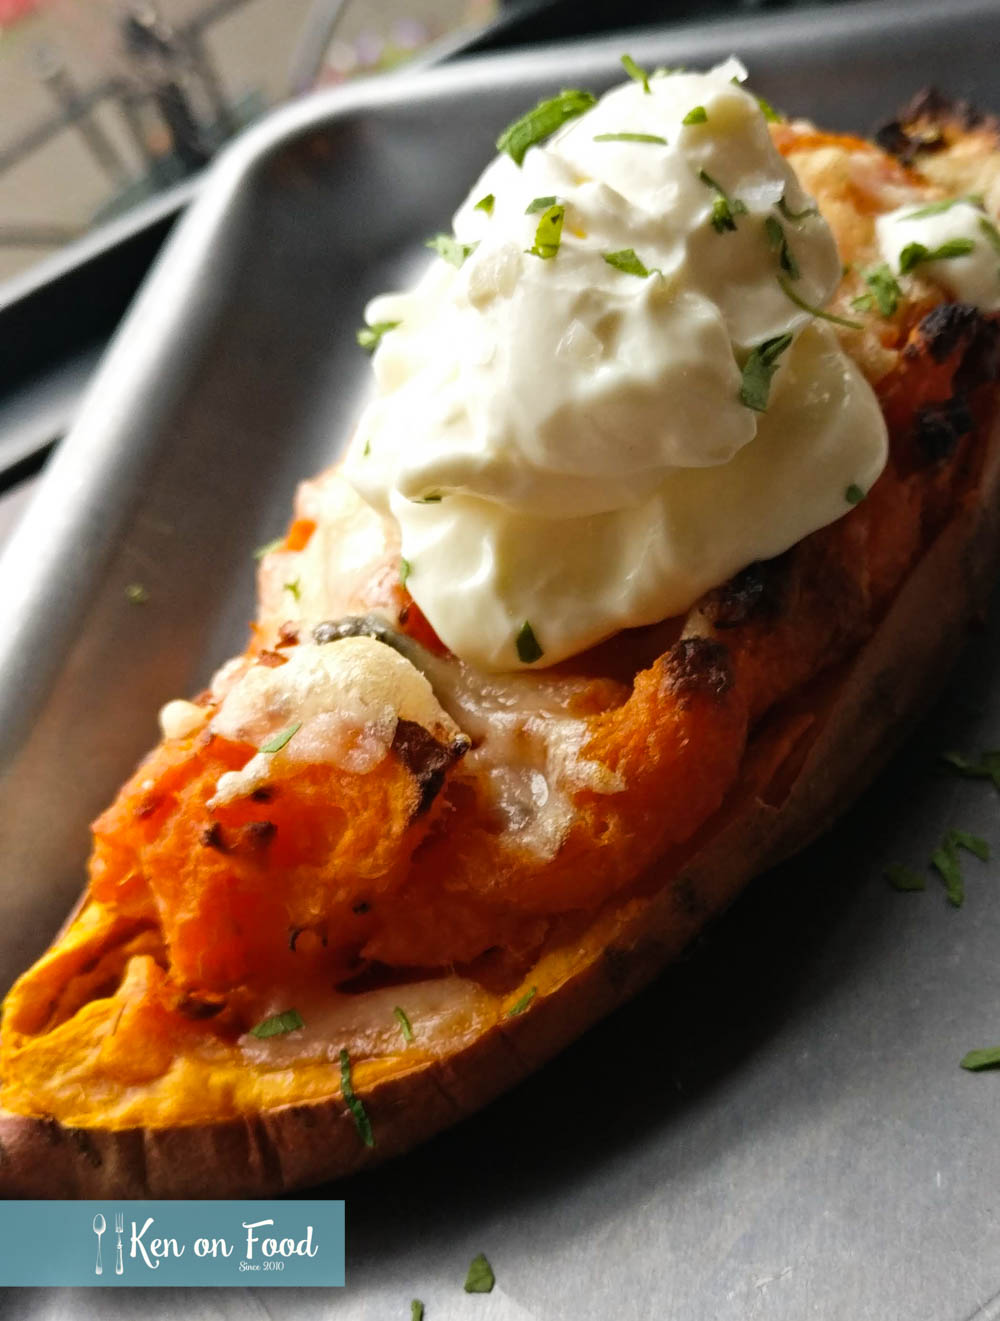 Loaded sweet potato at Butcher. Photo: Ken McGuire/kenonfood.com